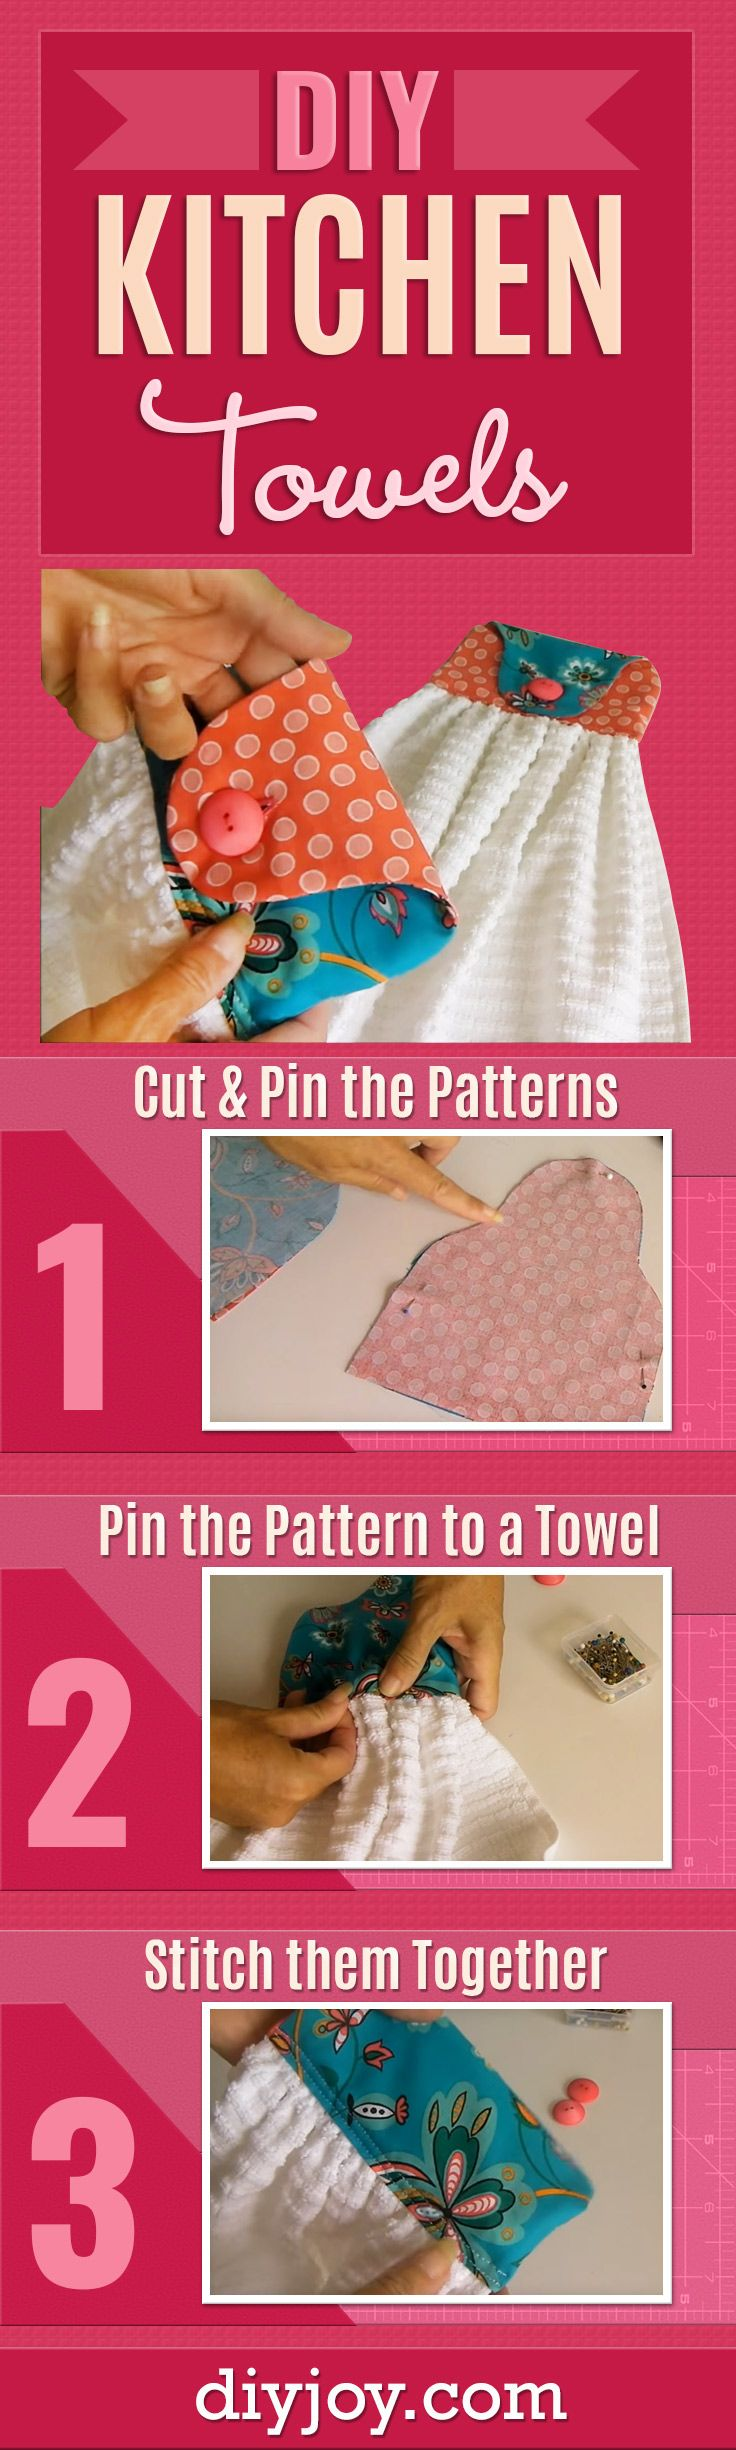 No one should be without these hand towels in their kitchen rustic diy kitchen towels cute and easy sewing project that makes a cool diy christmas gift solutioingenieria Choice Image